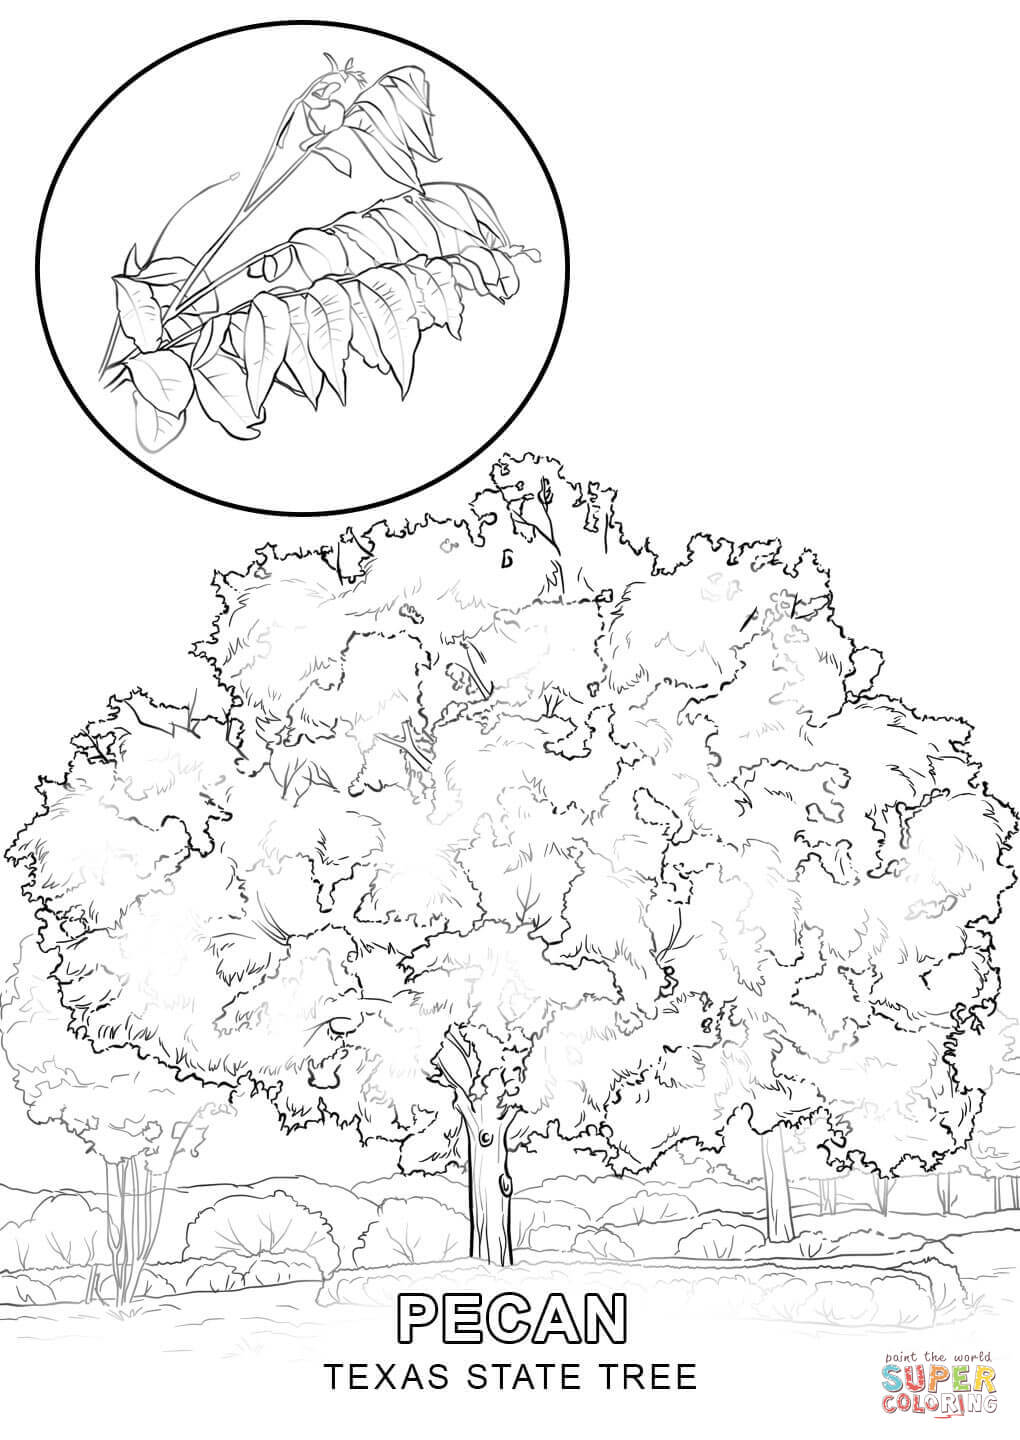 texas state seal coloring page awesome north dakota state seal coloring page top free texas seal page coloring state